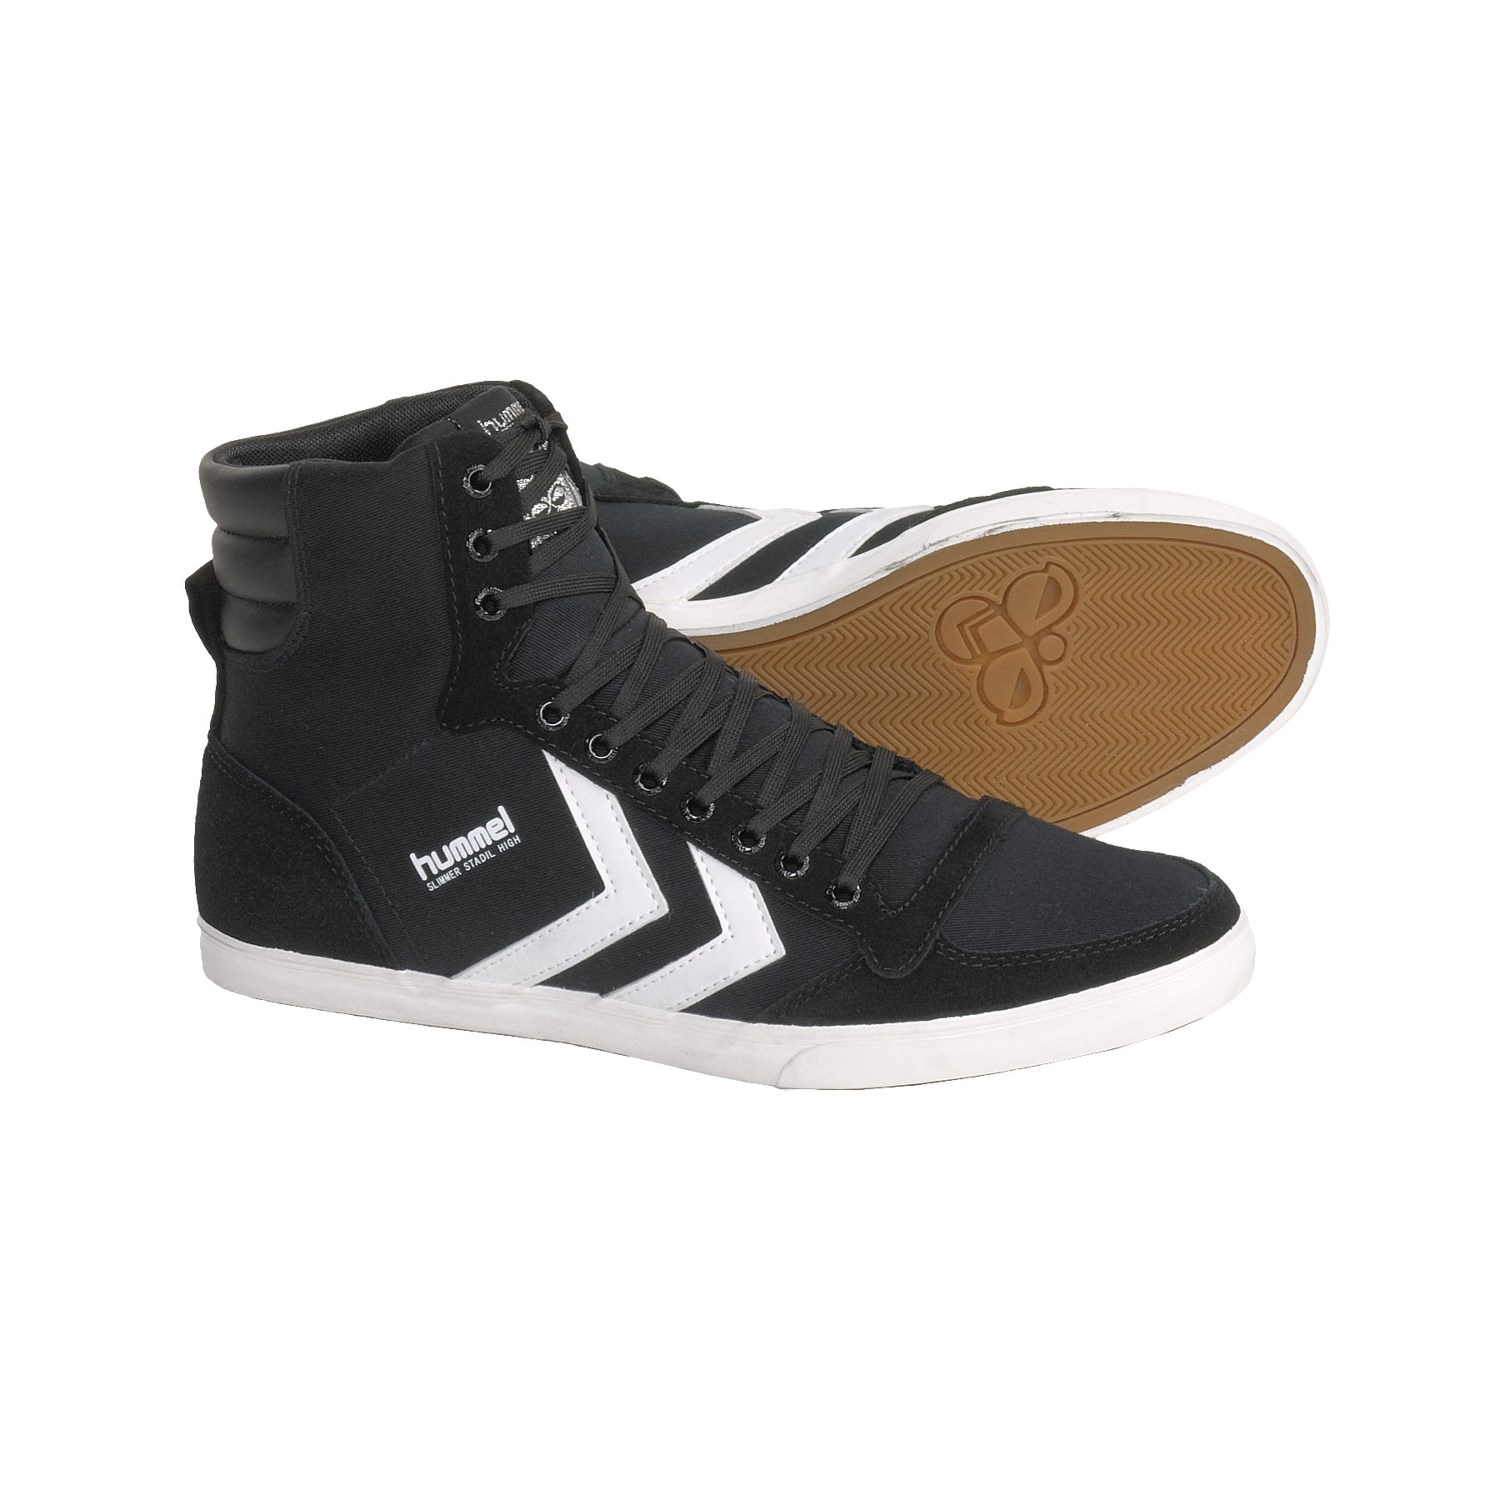 Shop the Latest Collection of High Tops Athletic Sneakers for Mens at truemfilesb5q.gq Find a variety of workout & sport shoes from top brands & more. FREE SHIPPING AVAILABLE!